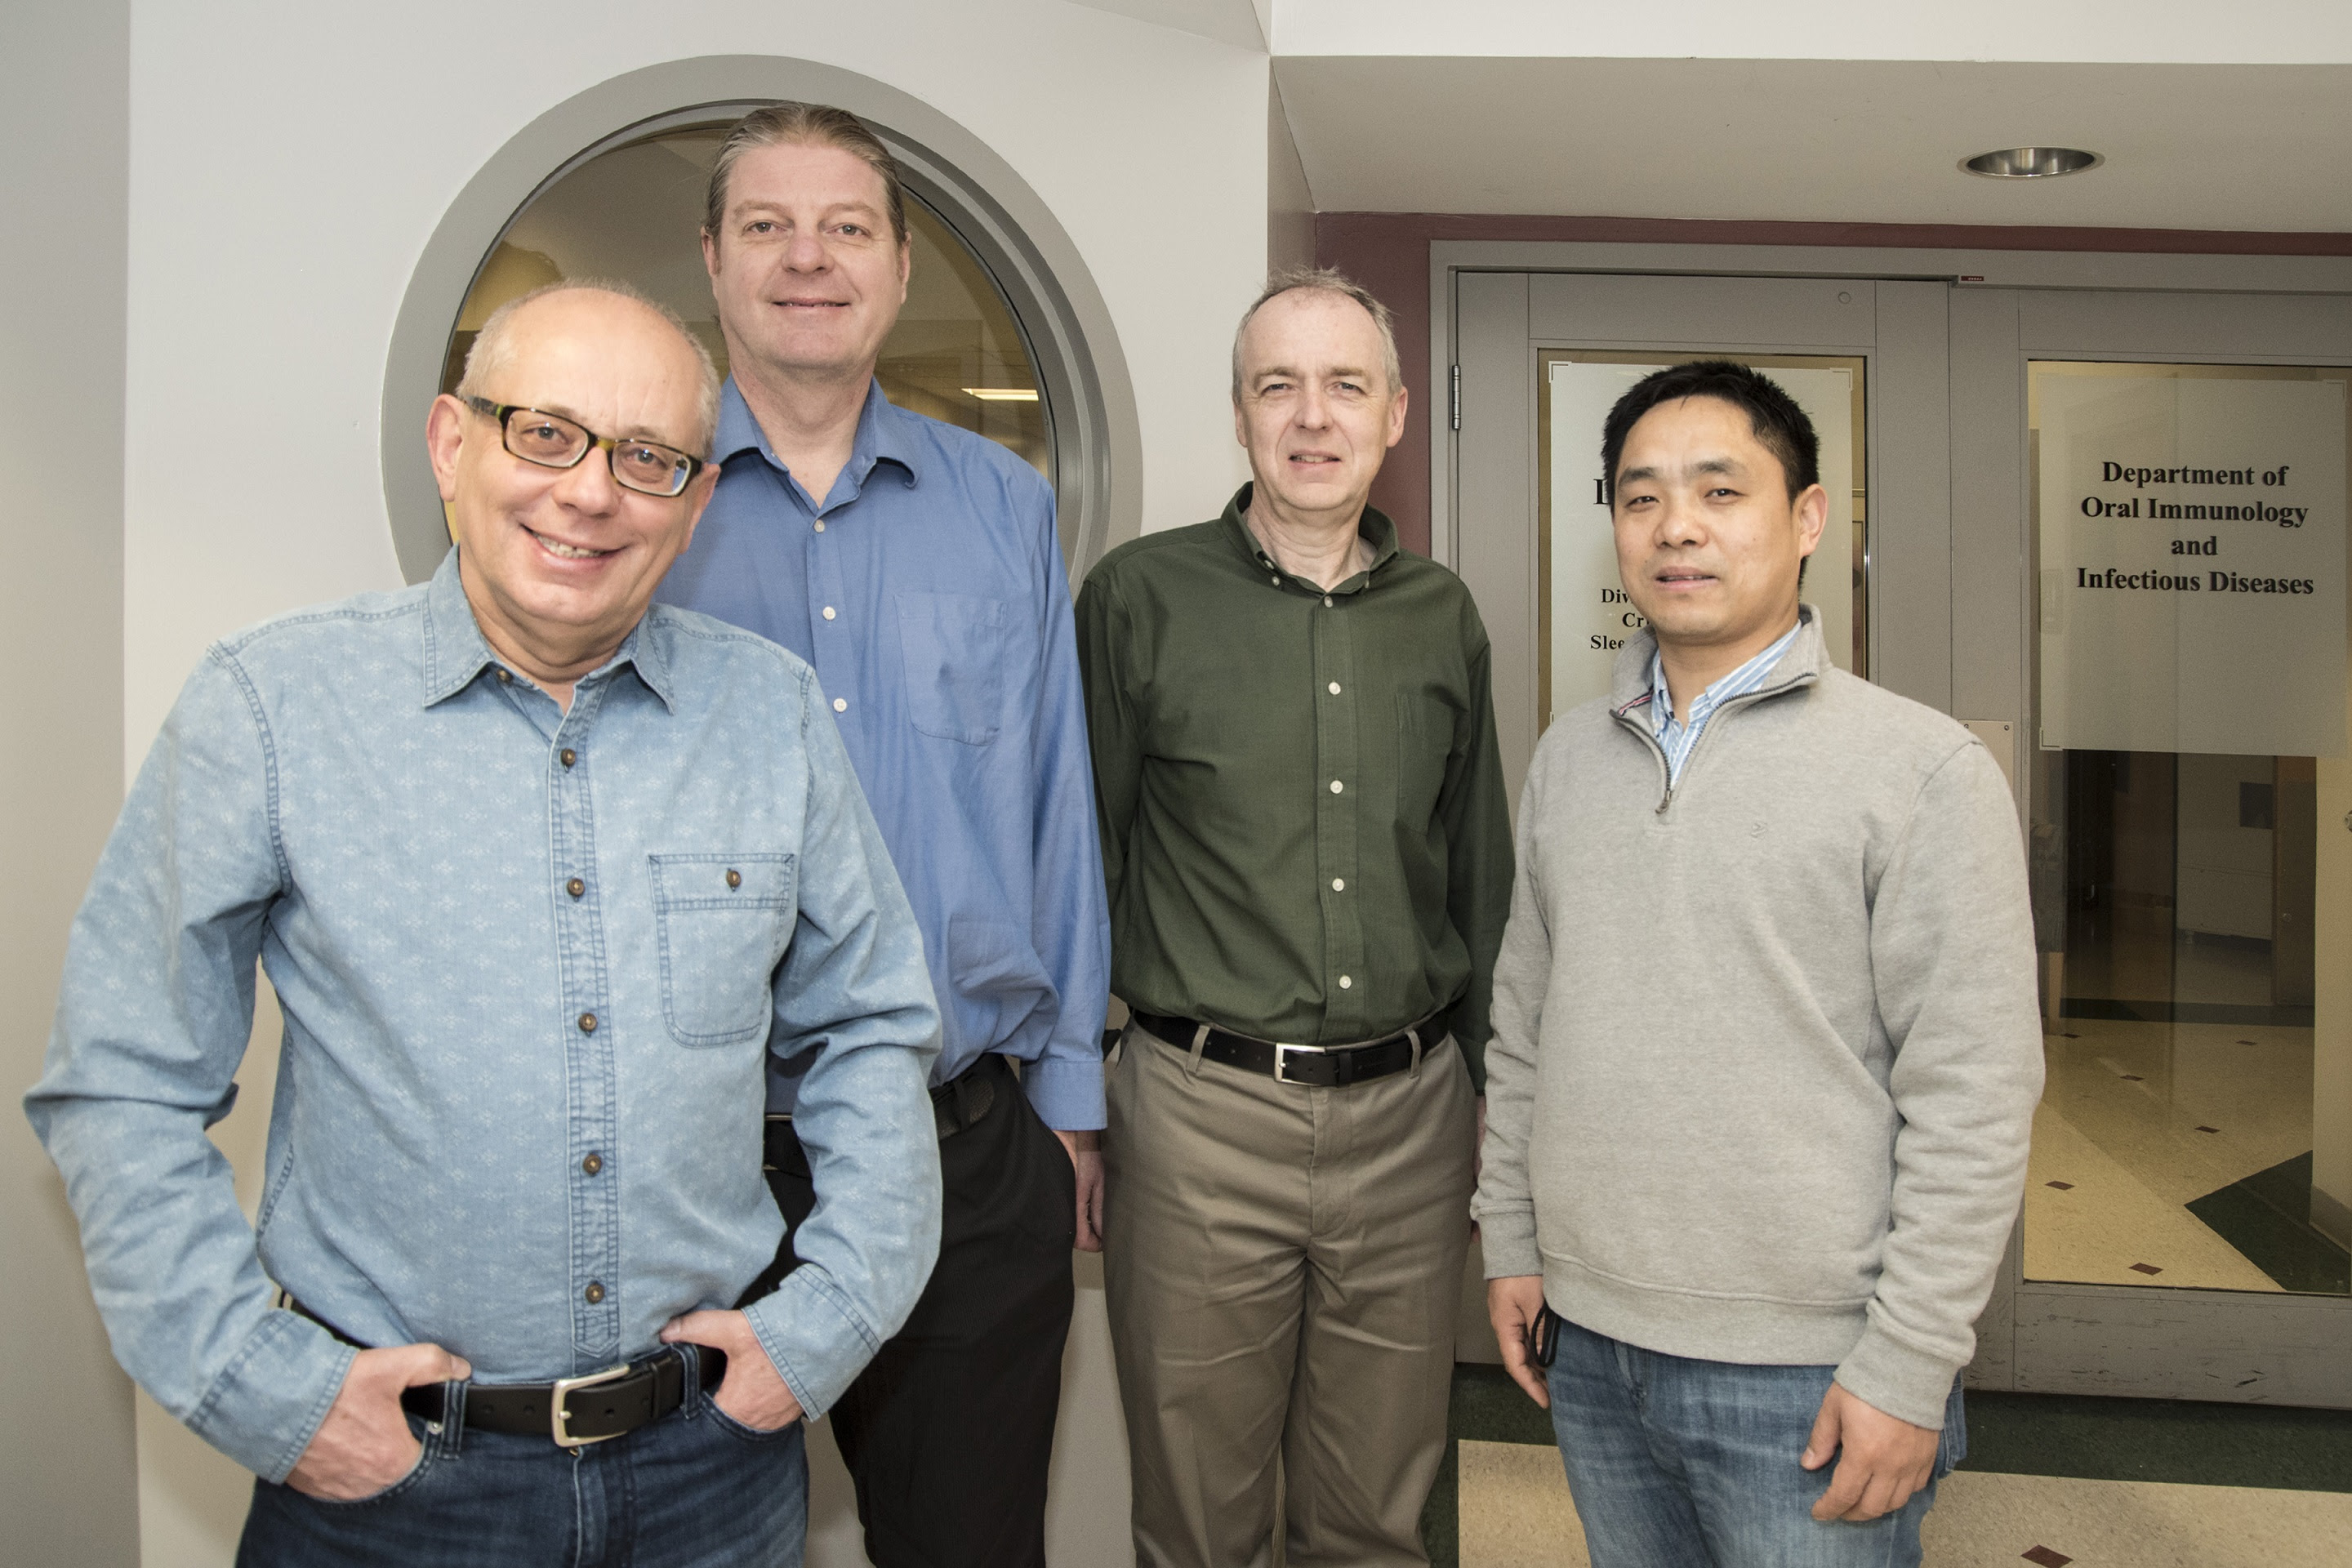 UofL School of Dentistry researchers Jan Potempa, David A. Scott, Richard J. Lamont and Huizhi Wang  (UofL Photo)